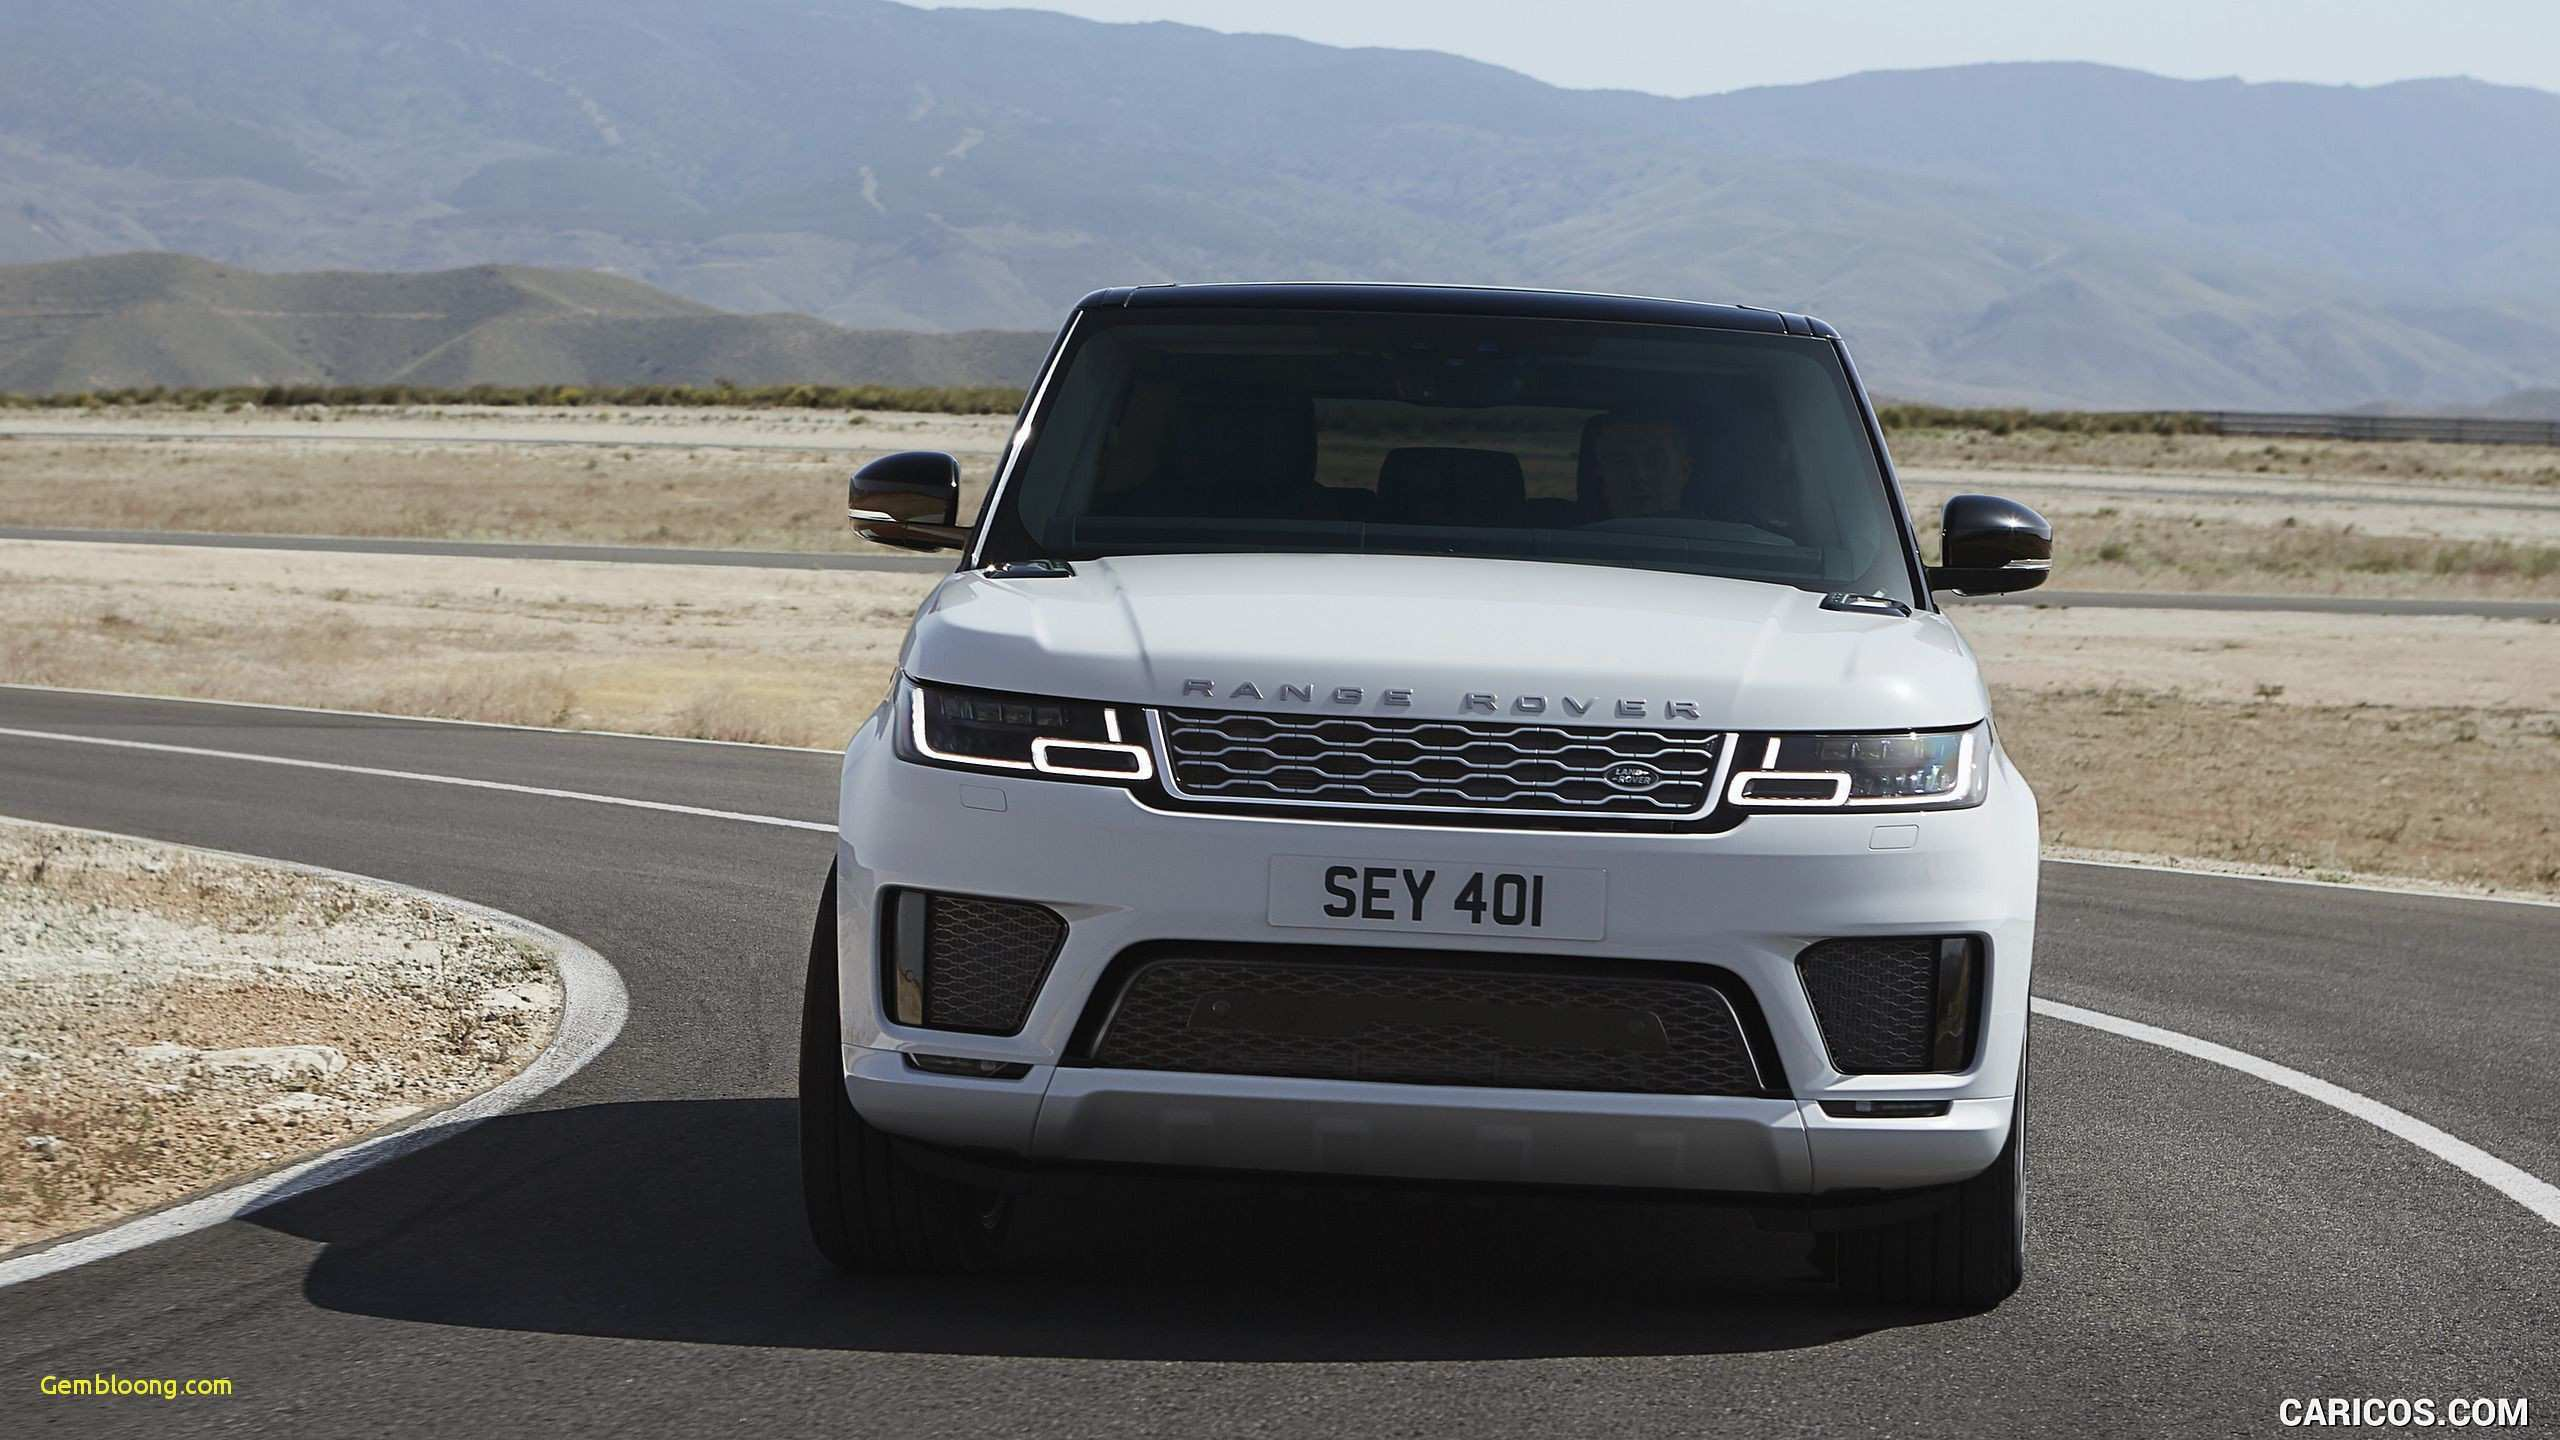 92 The 2019 Land Rover Freelander 3 Price Design And Review